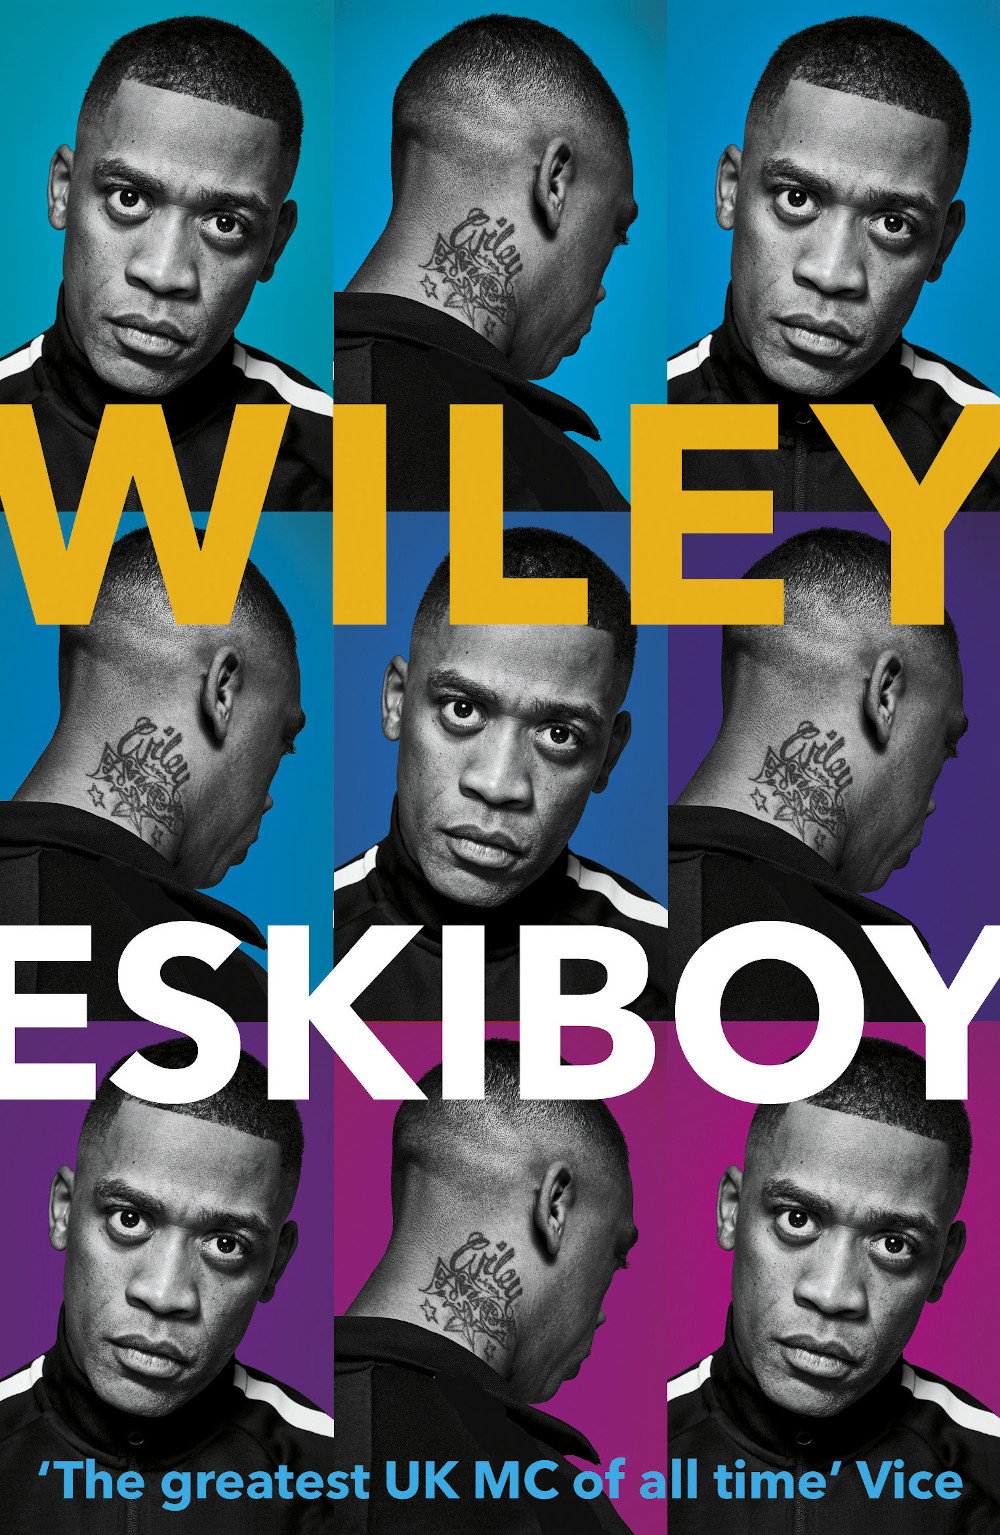 Front cover Wiley book Eskiboy book review